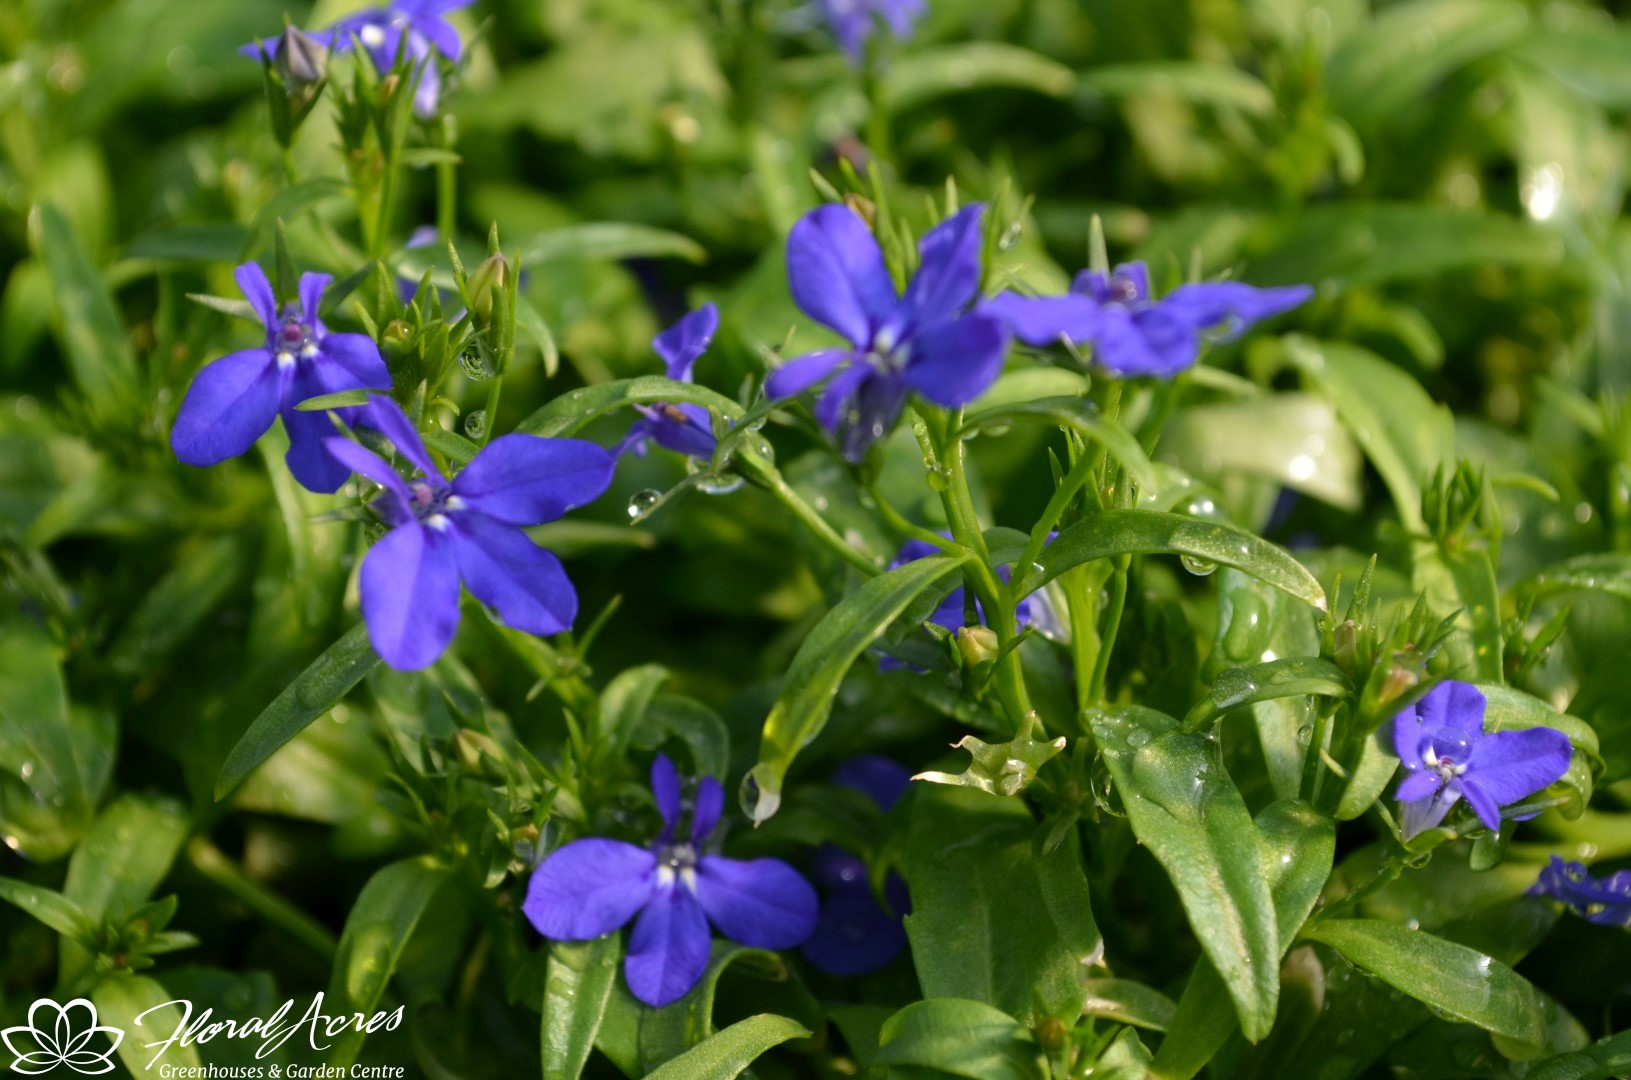 Lobelia Magadi Basket Dark Blue Floral Acres